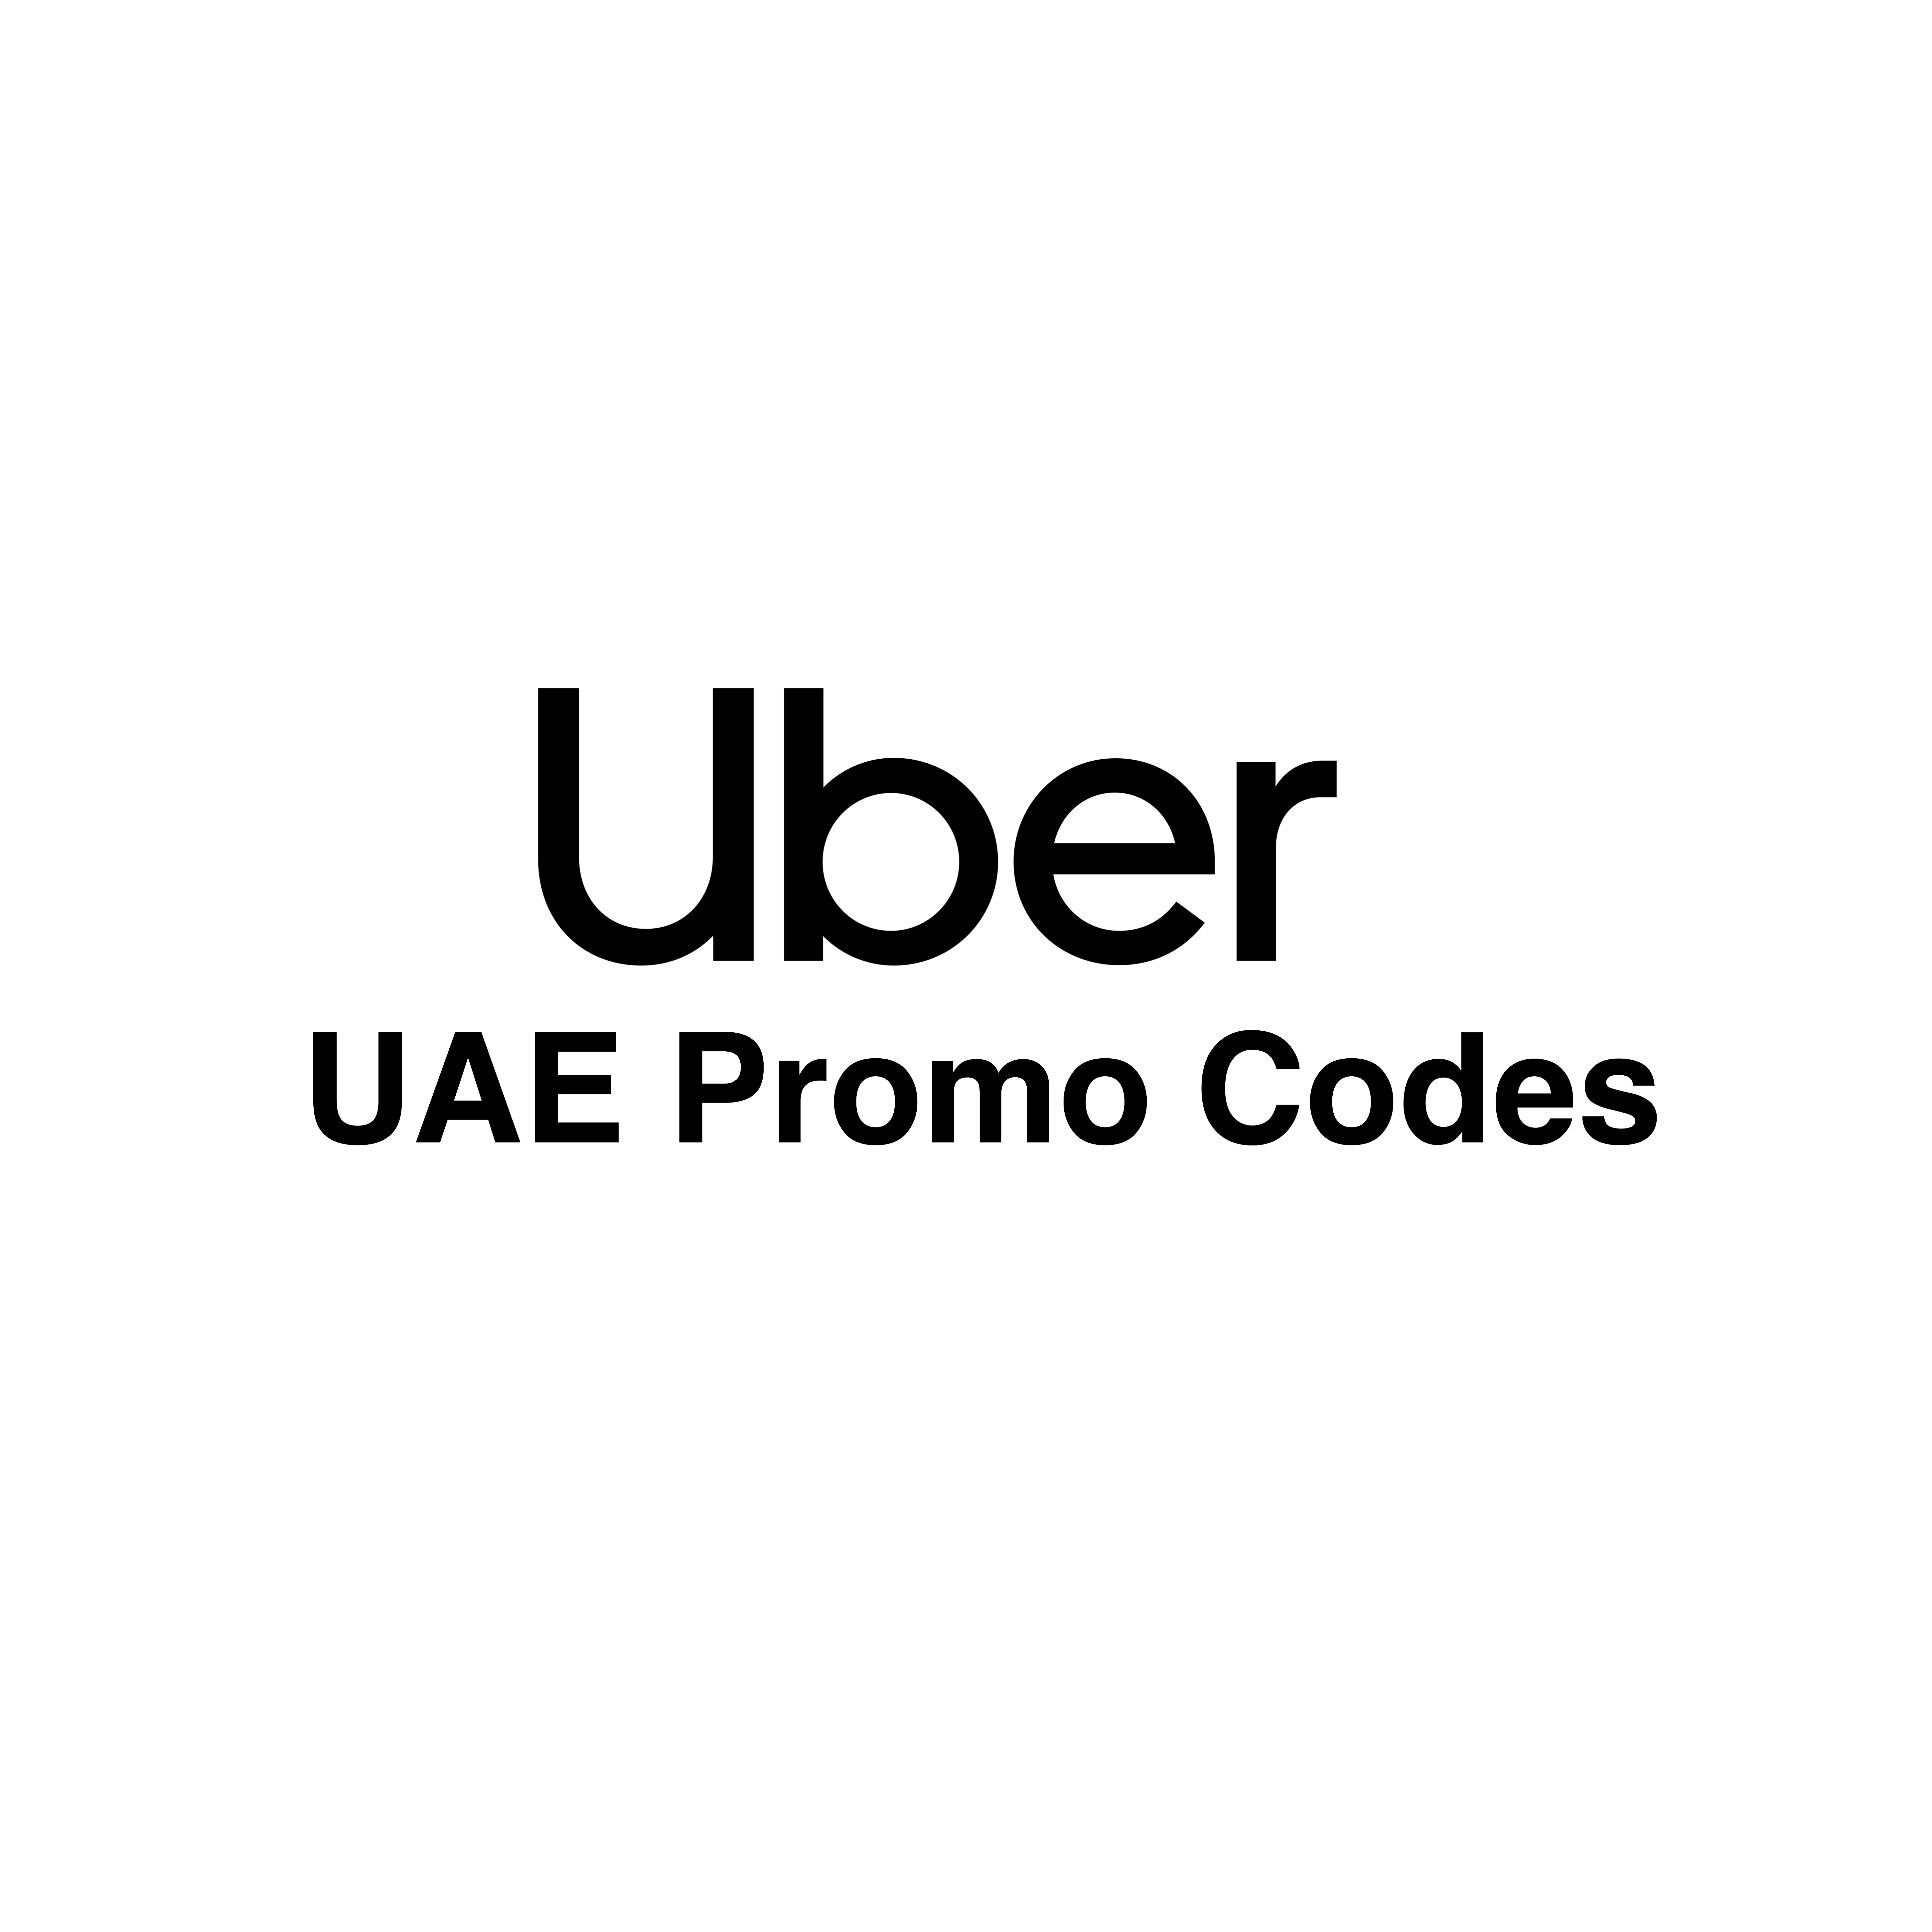 Uber Promo Code Dubai and Abu Dhabi (UAE) - The Points Habibi